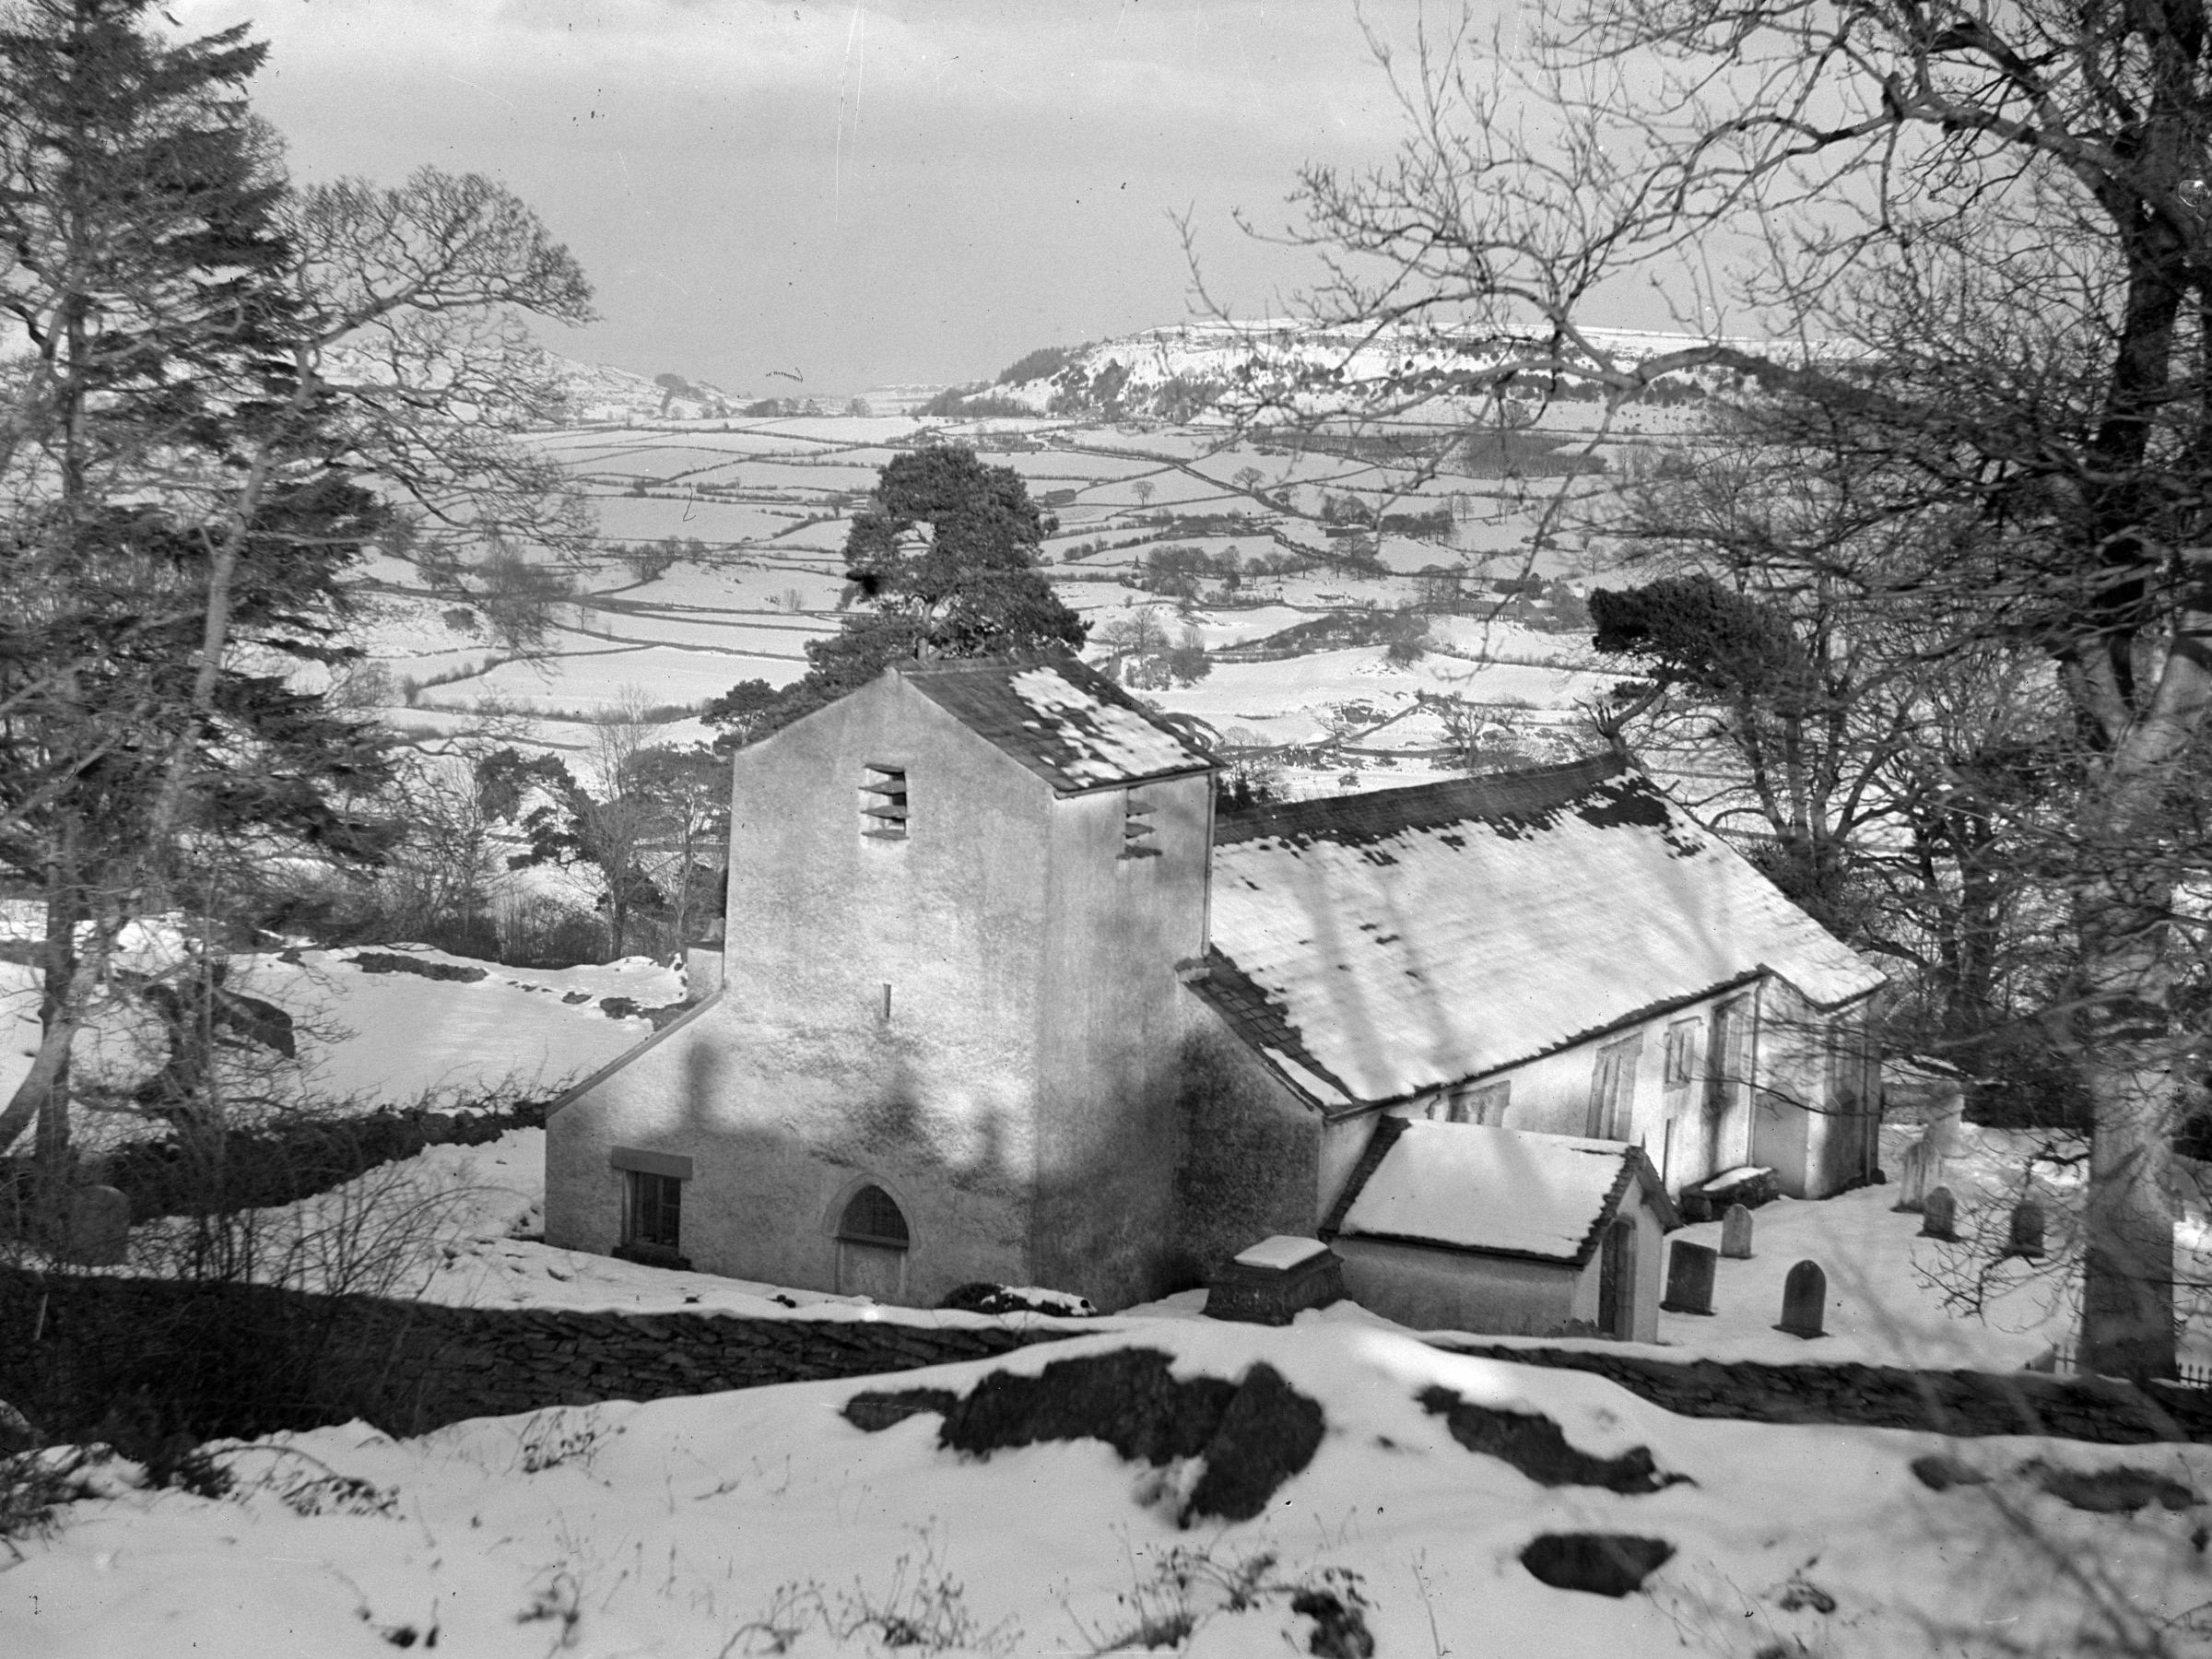 Cartmell Fell Church (Picture by Joseph Hardman)